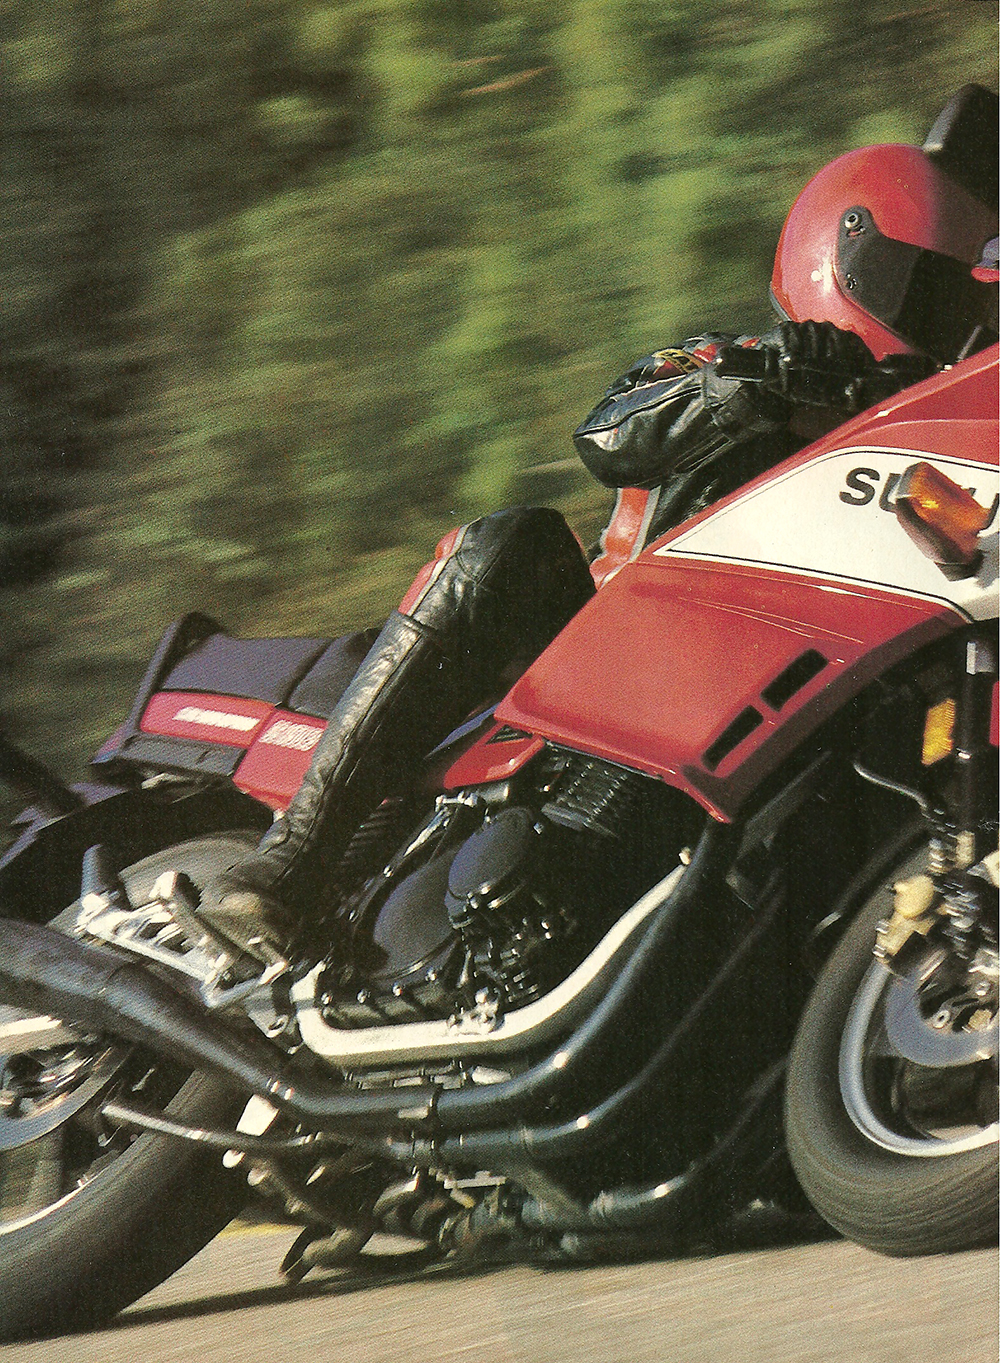 1984 Suzuki GS1150ESE road test 1.jpg